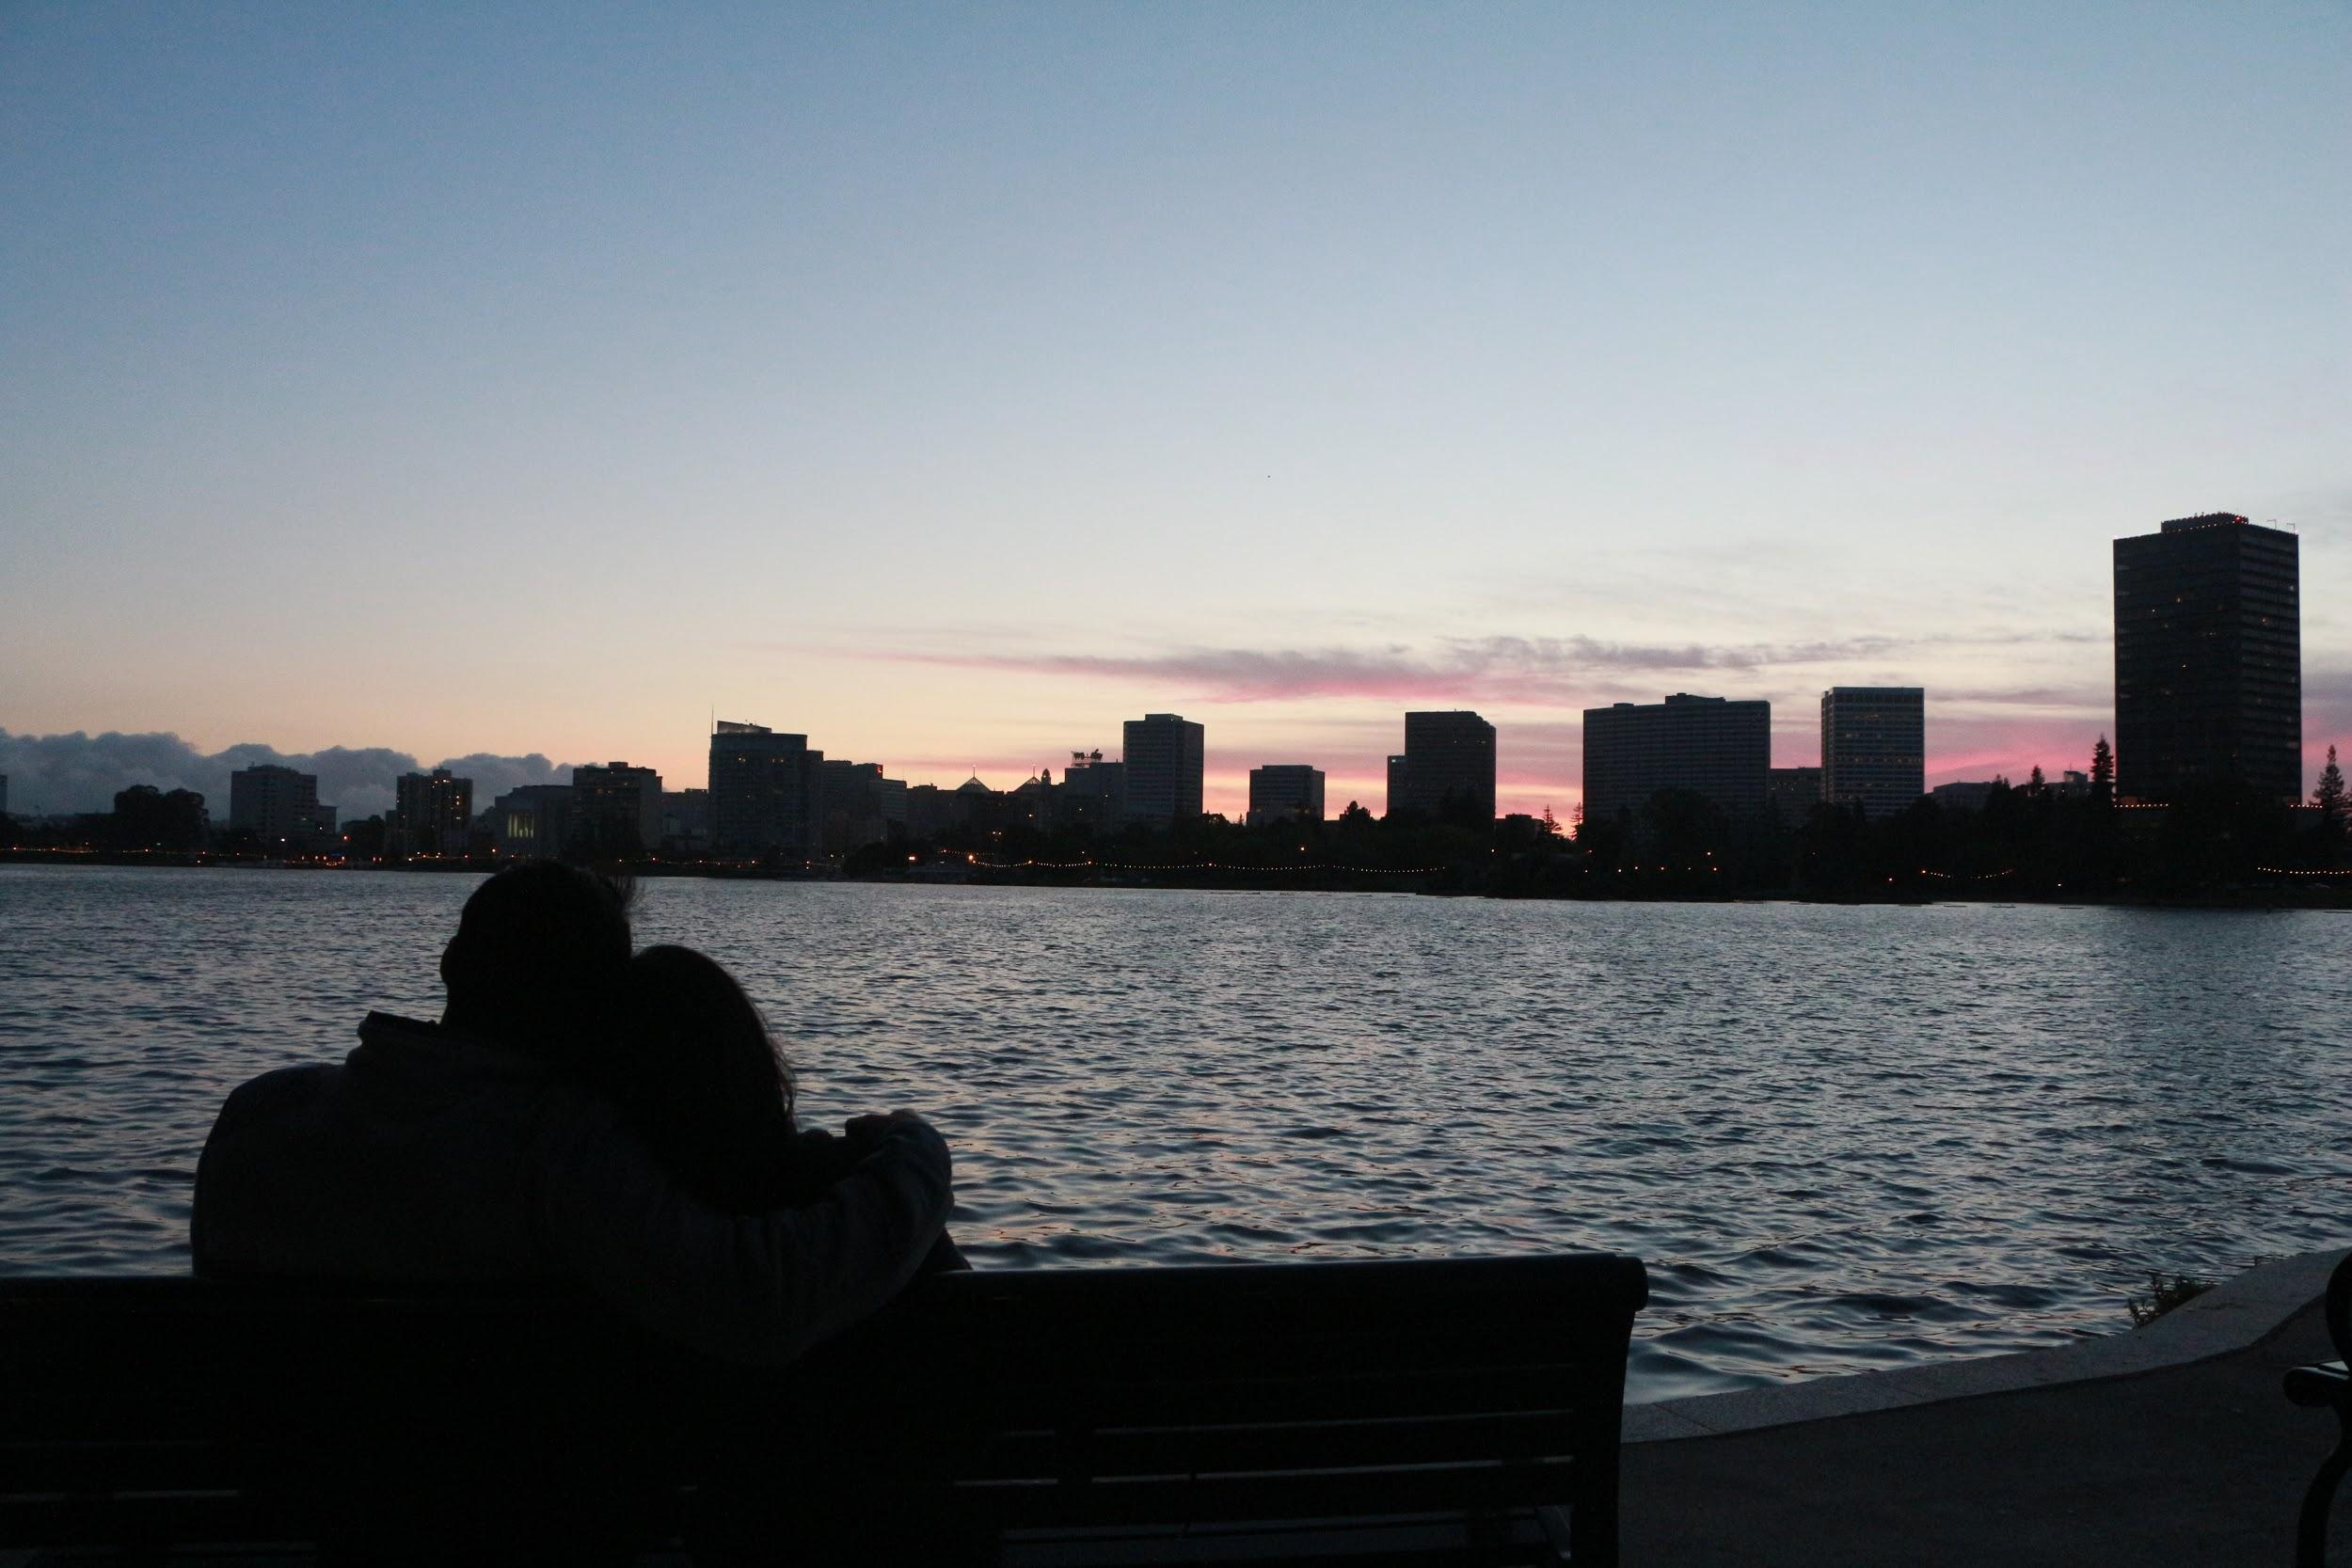 This summer, I was lucky enough to live close to Lake Merritt. I was able to go on a run around the lake and watch the sunset every week. On this day, I was able to capture my brother and his fiance enjoying the scenery together. (MONICA CHAN)